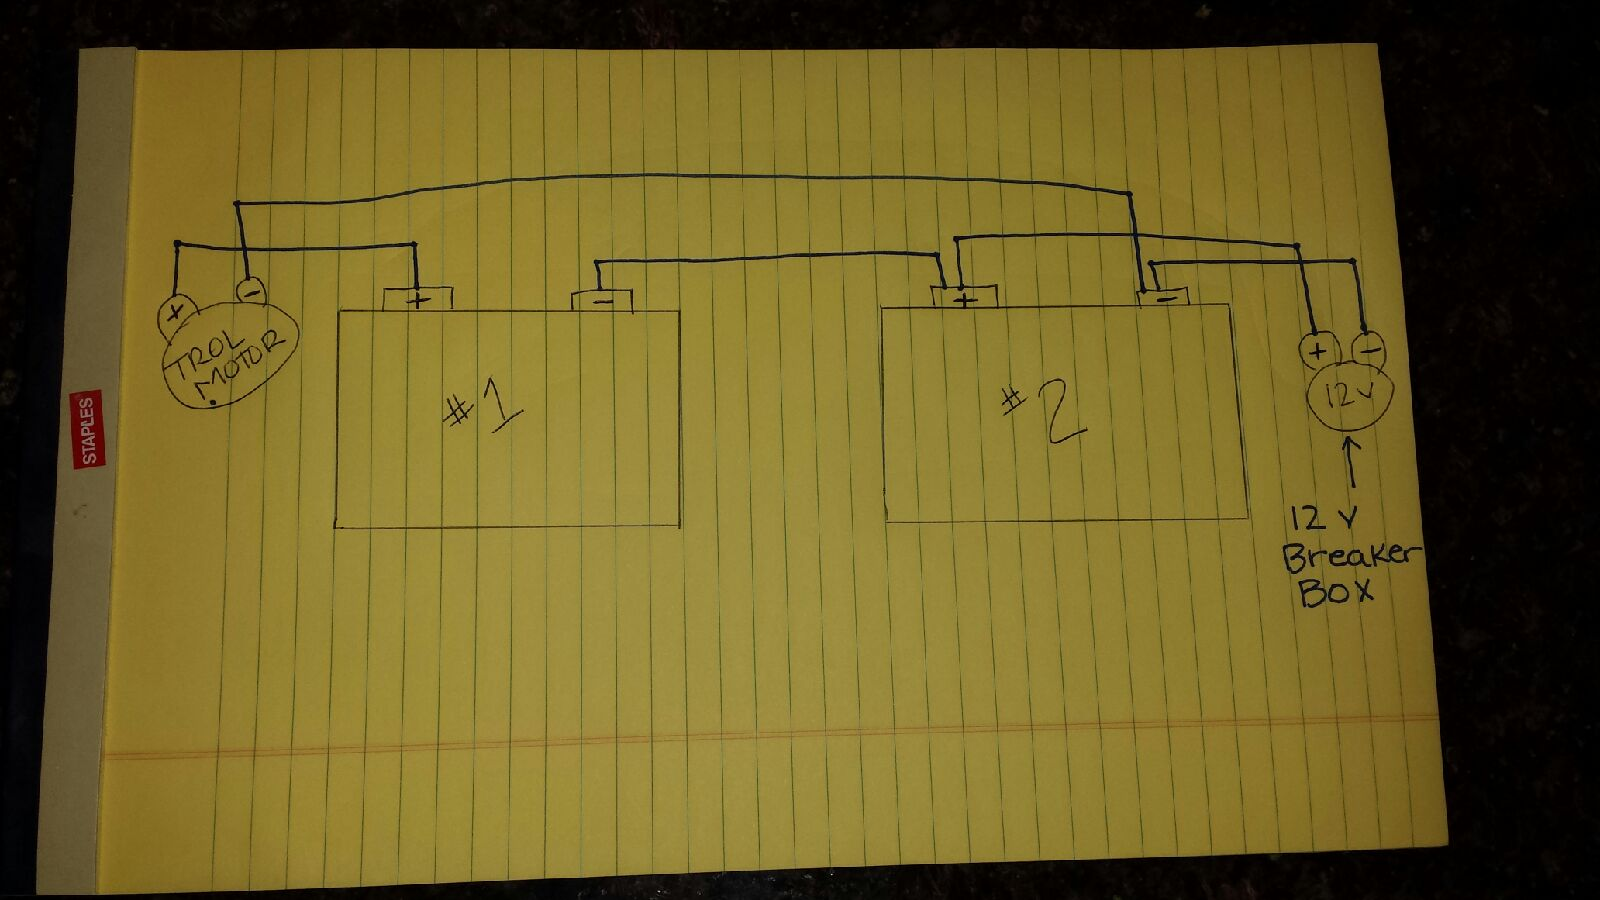 12v 24v diagram how to wire 24 volt trolling motor and 12 volt power pole on 2 12